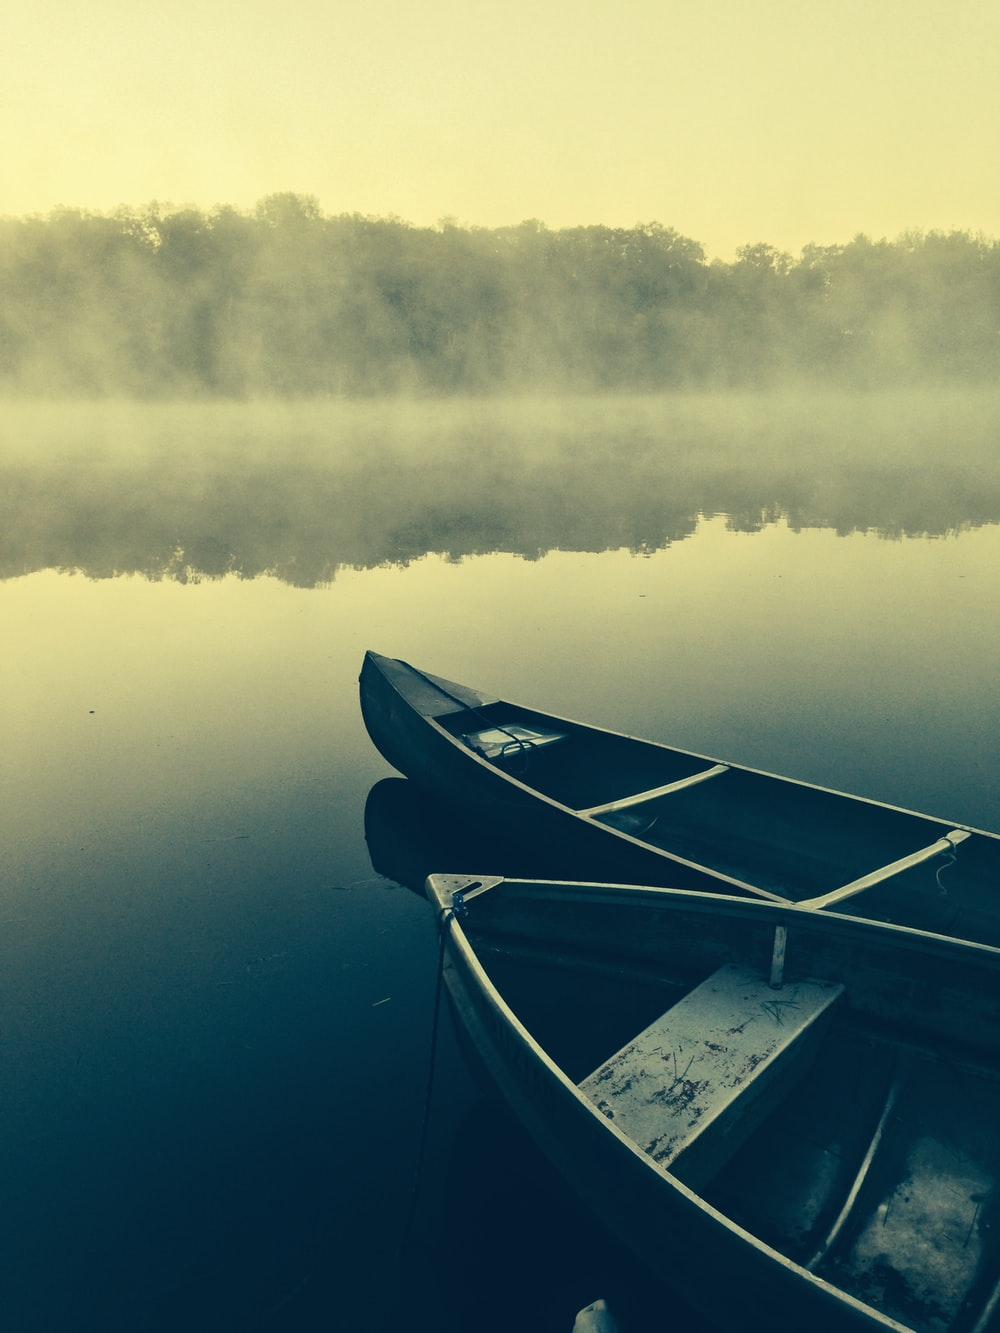 two gray canoes on misty body of water